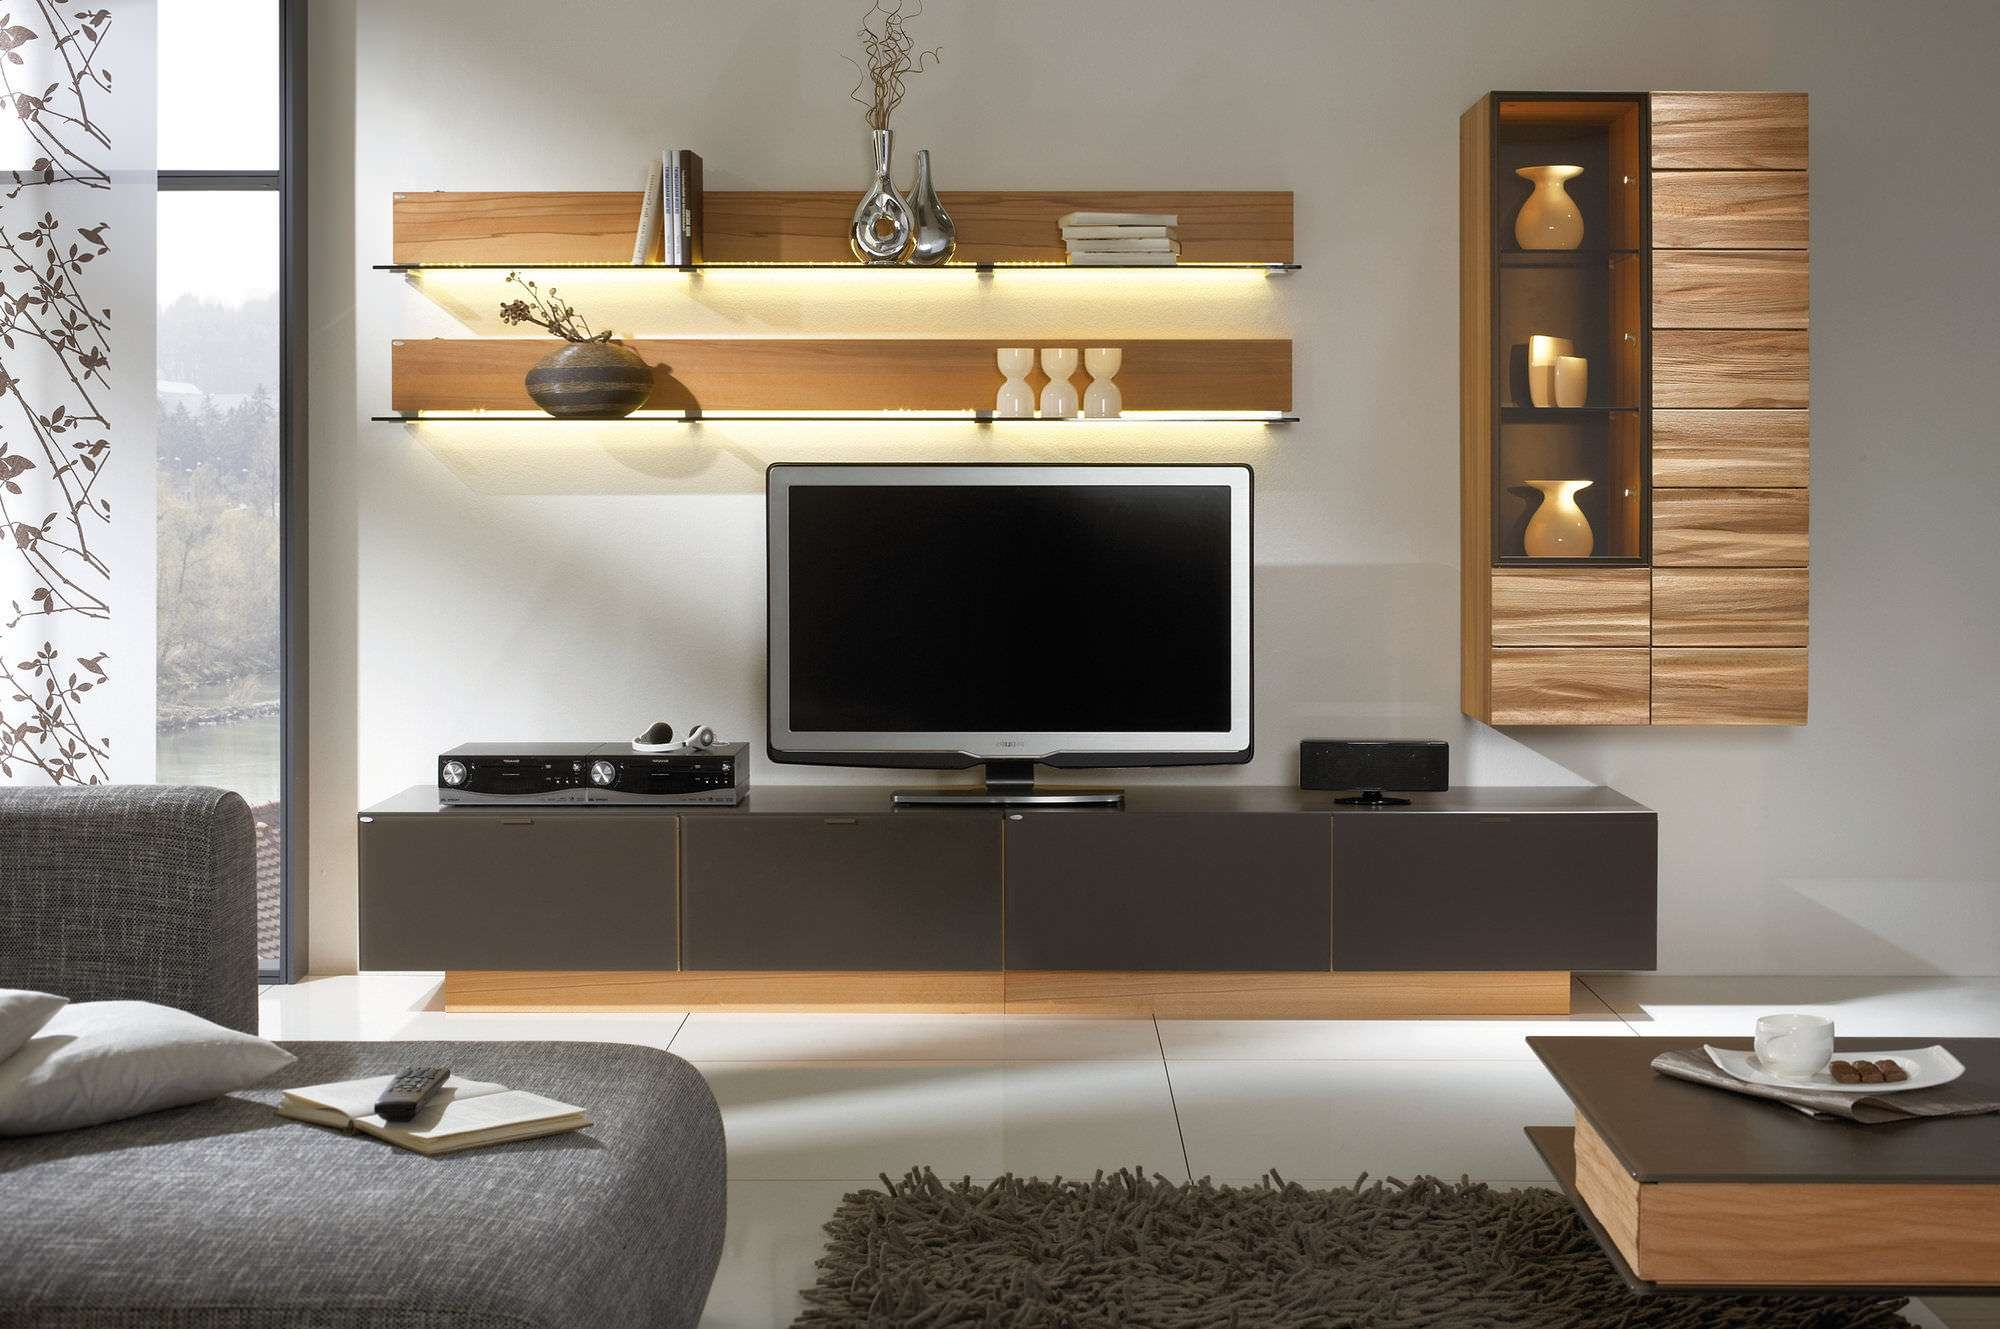 Fetching Gloss Lacquer Stylist Tv Stand And Stylist Tv Stand Intended For Contemporary Tv Cabinets (View 18 of 20)